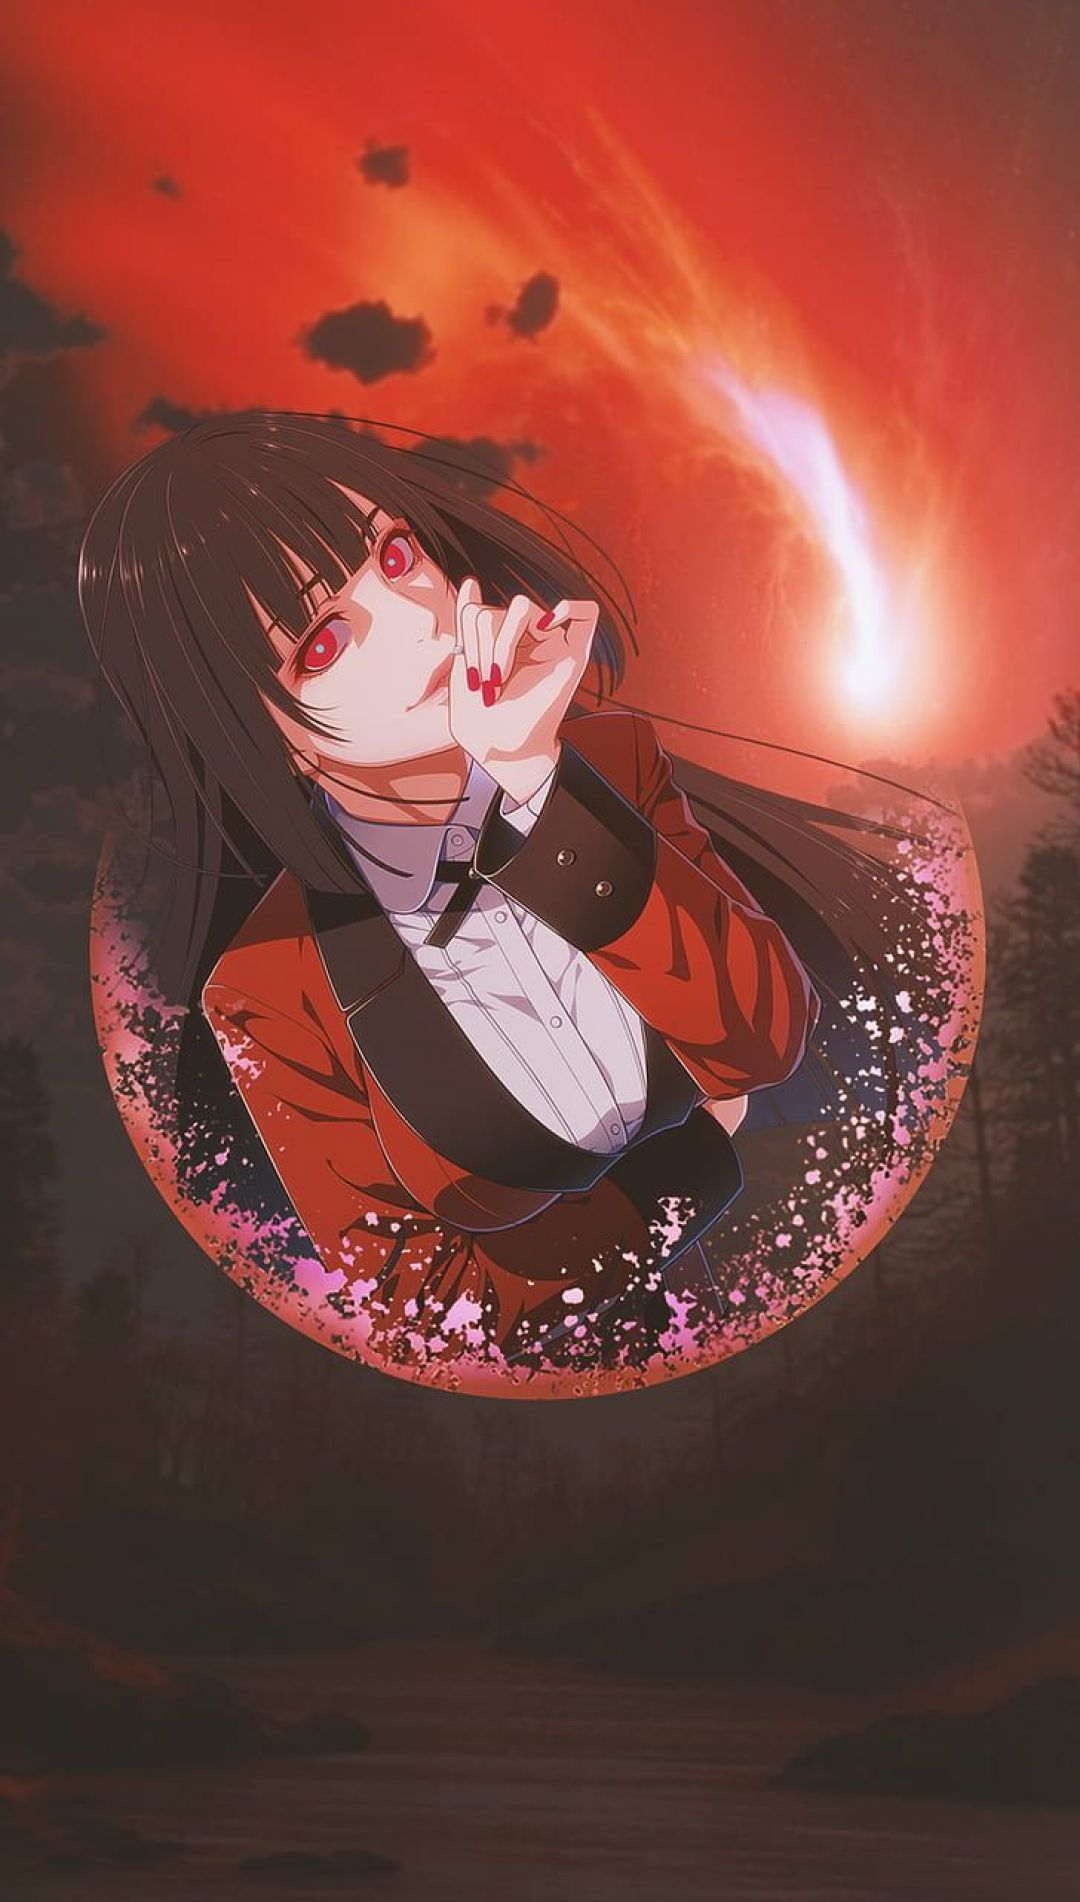 Kakegurui Android Iphone Desktop Hd Backgrounds Wallpapers 1080p 4k 127046 Hdwallpapers Androi Yandere Anime Cute Anime Wallpaper Anime Wallpaper